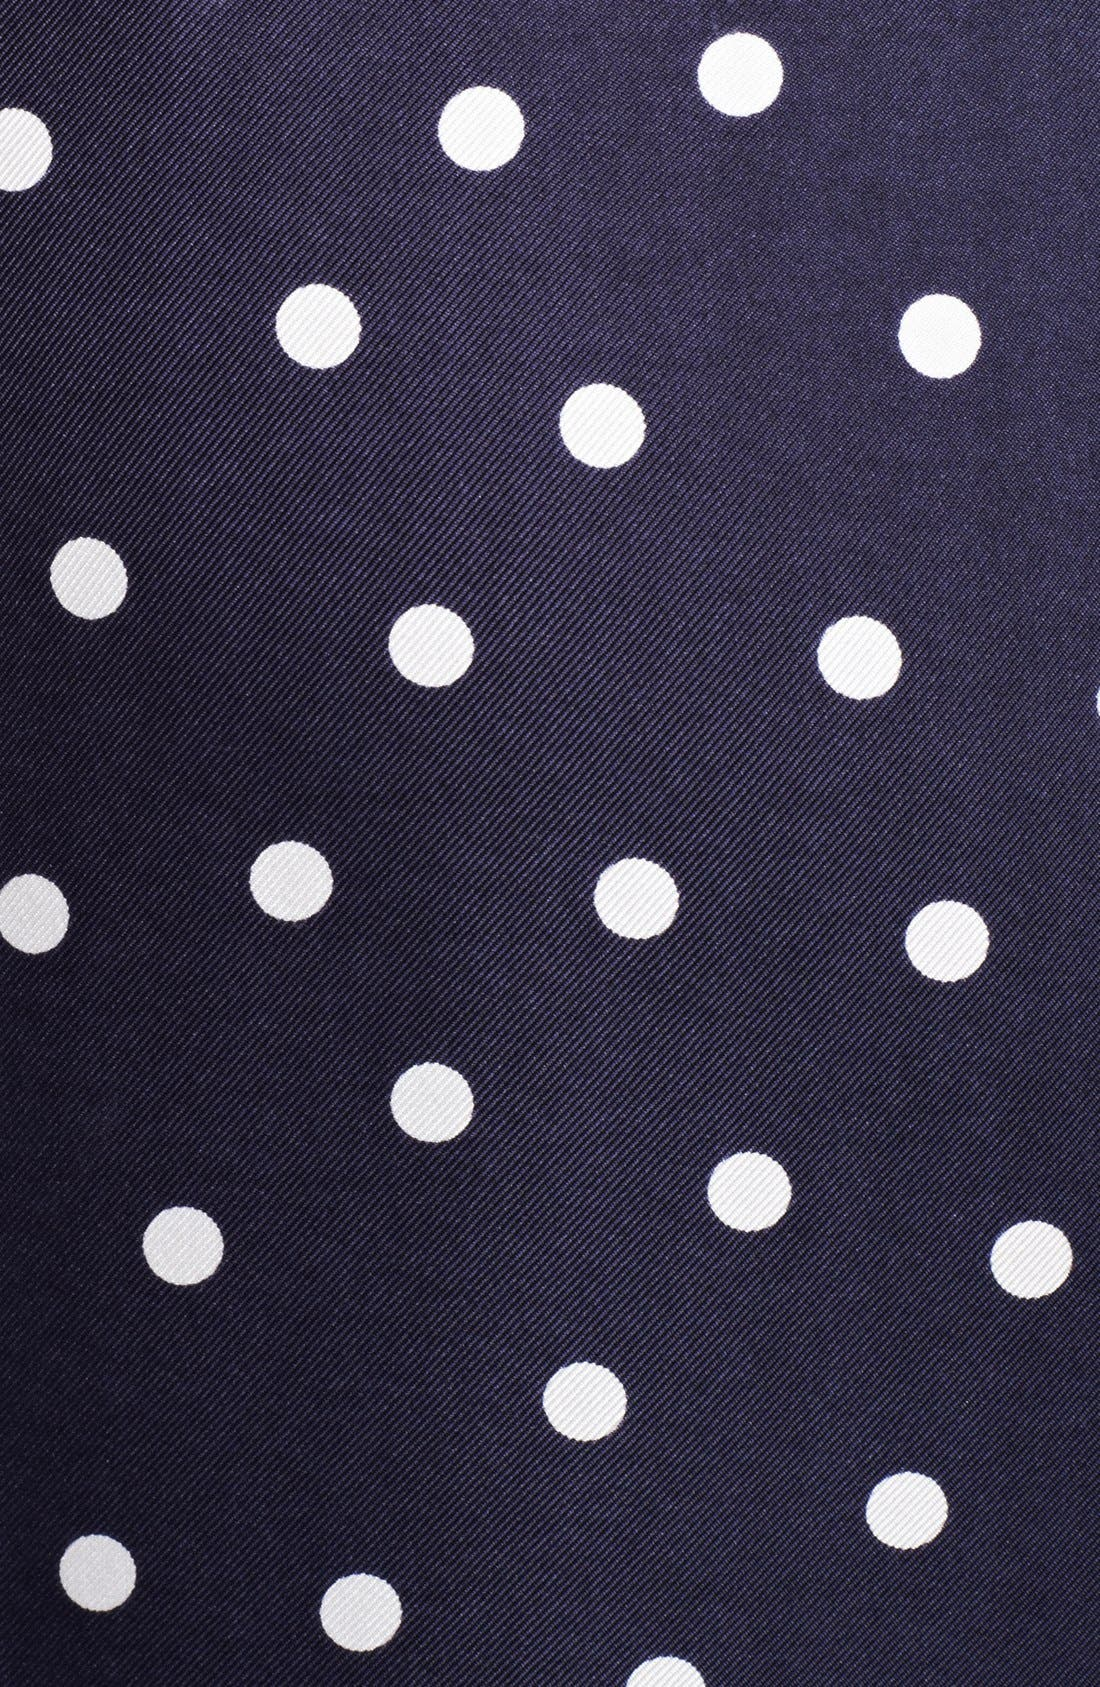 Alternate Image 3  - Max Mara 'Aligi' Polka Dot Silk Pants